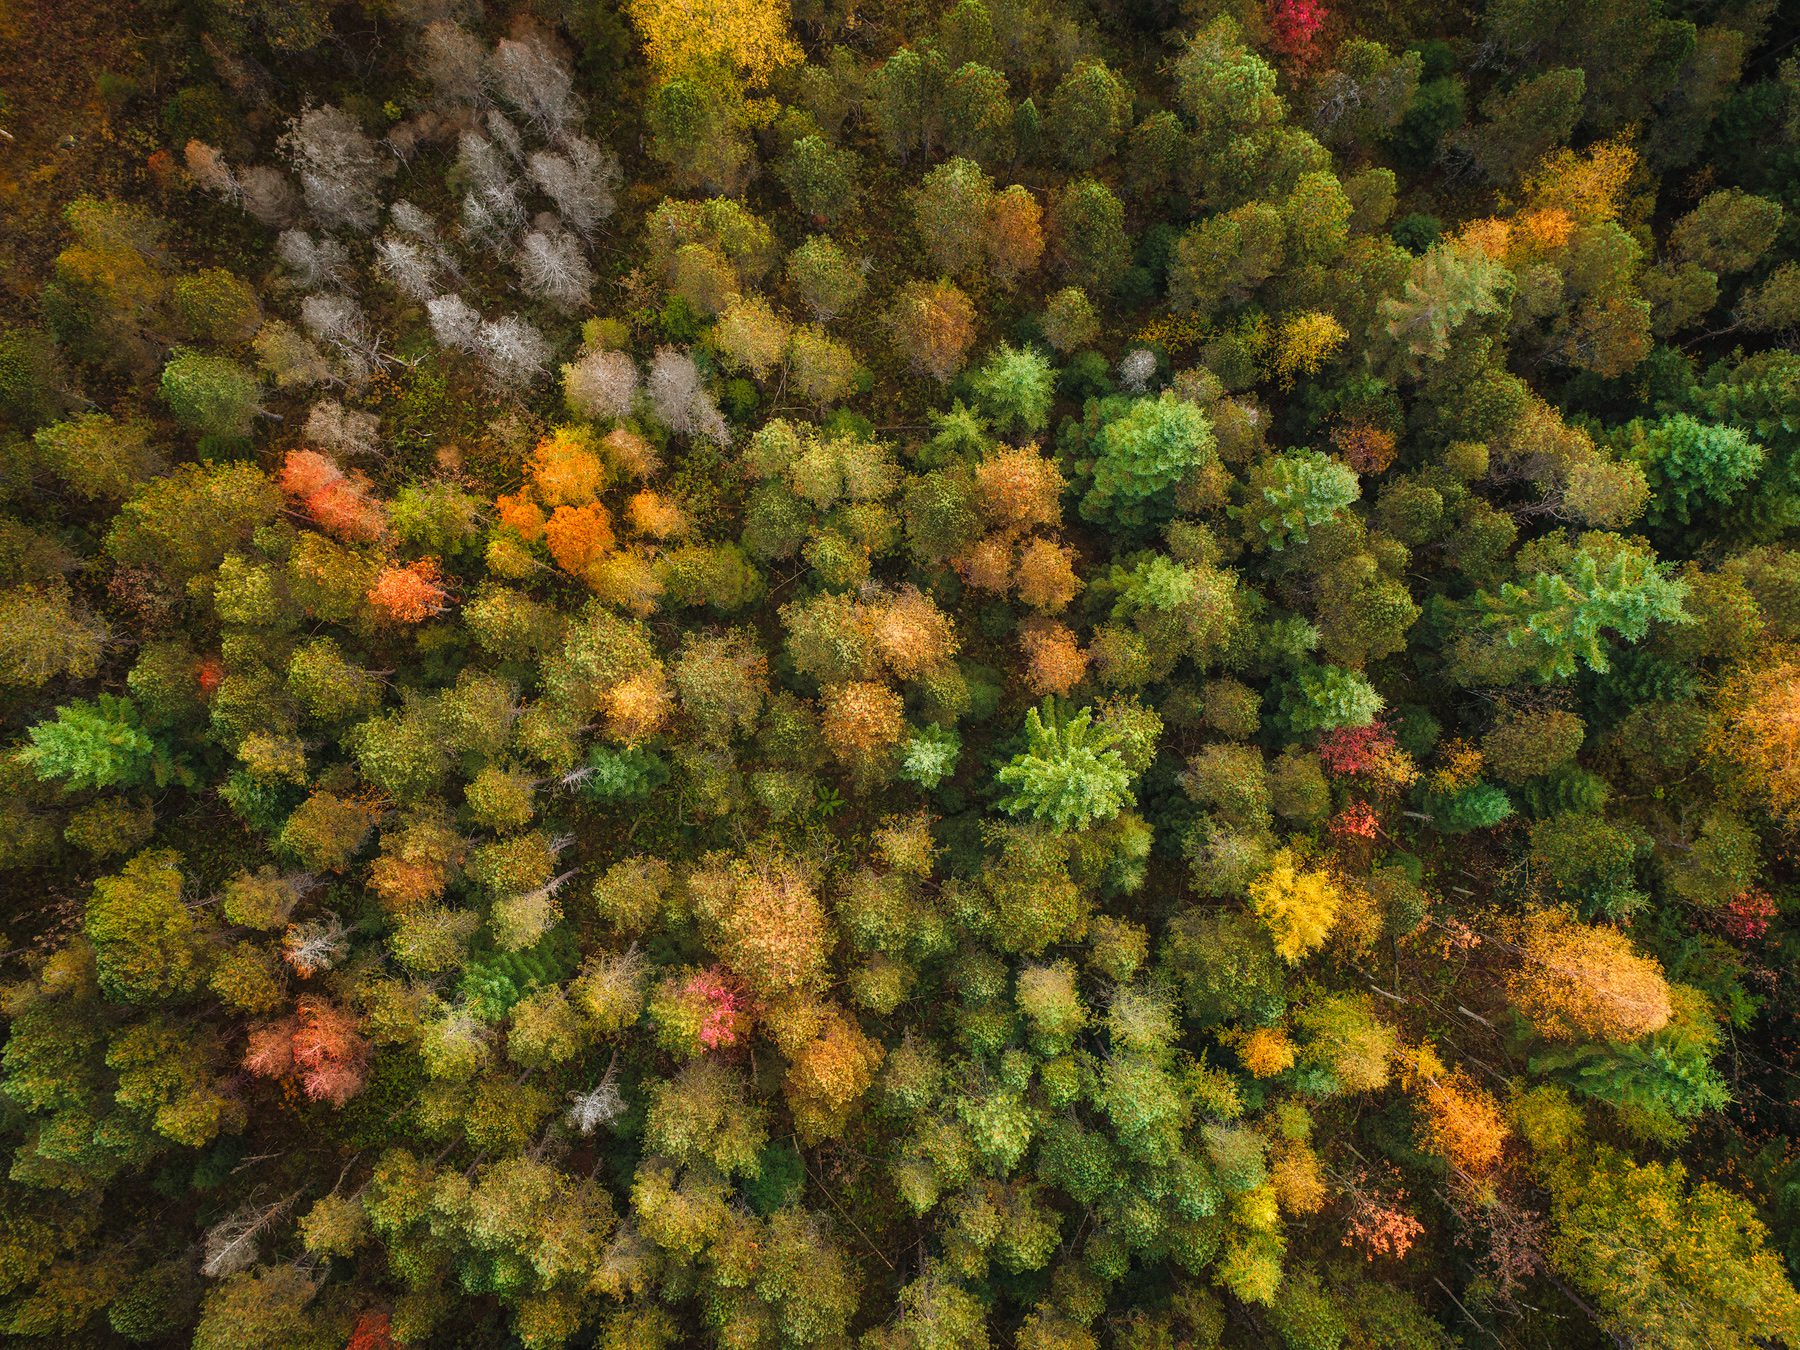 Aerial photograph: autumn color explosion at Hochmoor Rothenthurm